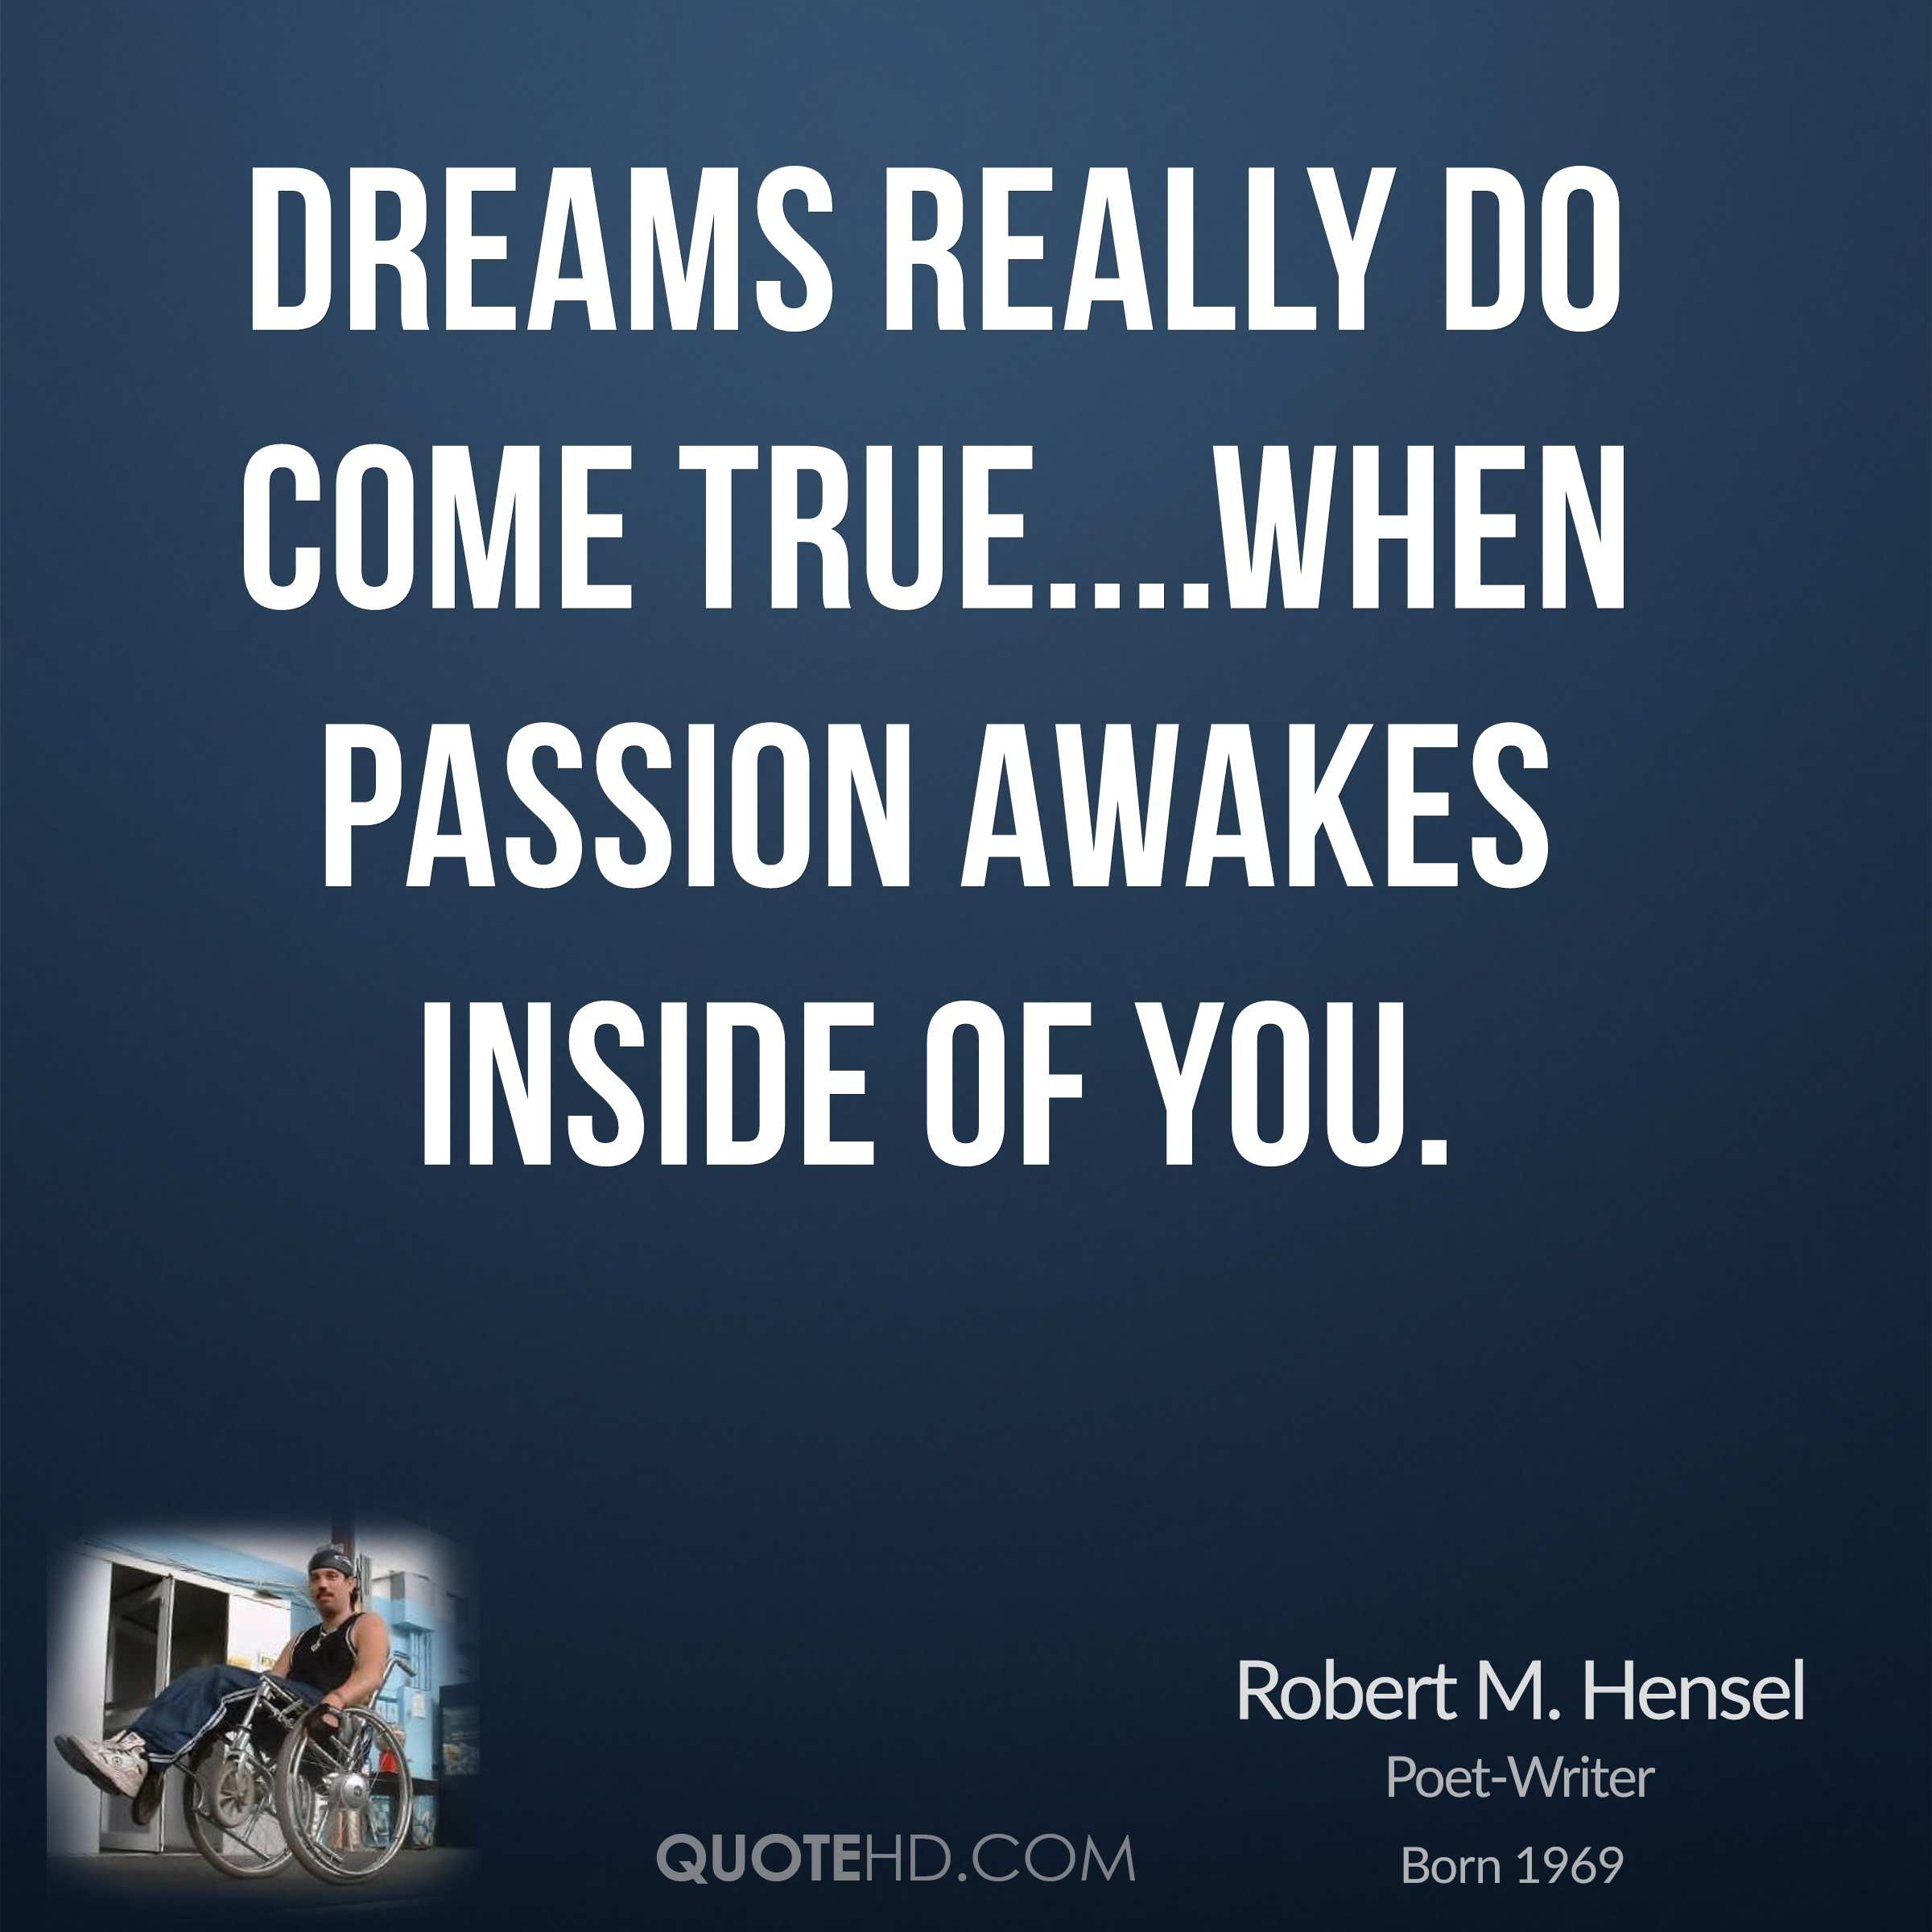 Dreams really do come true....When passion awakes inside of you.